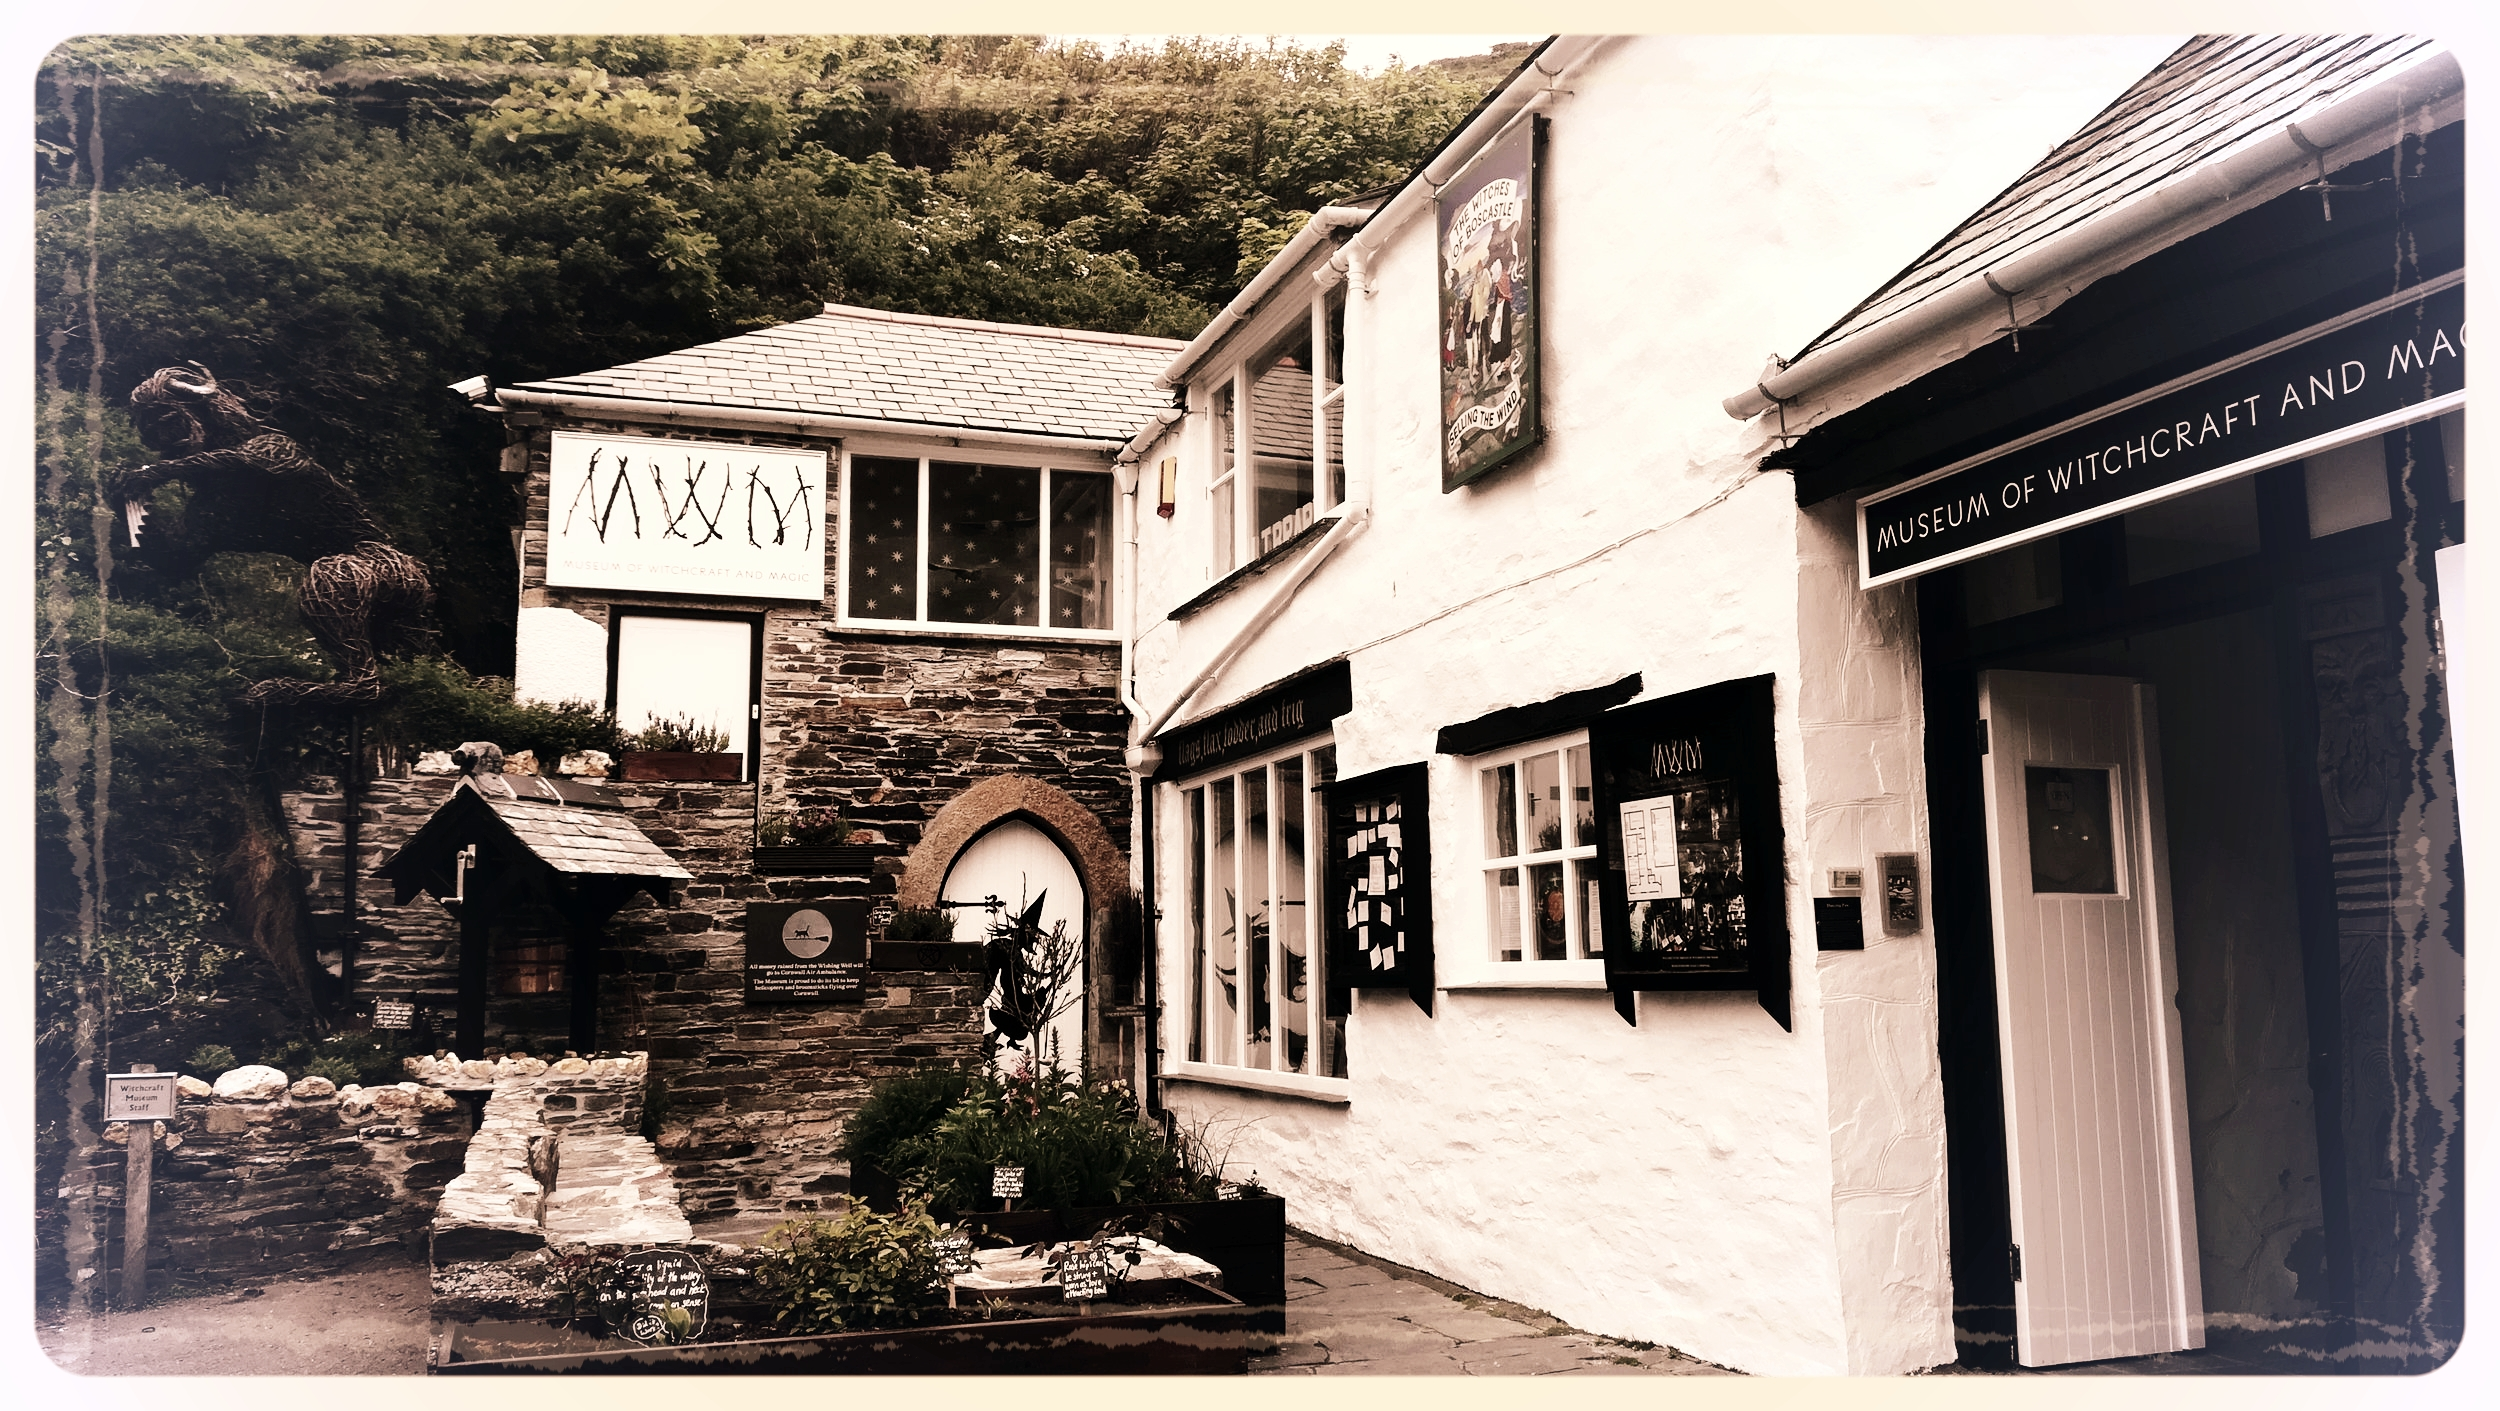 Museum of Witchcraft and Magic (Boscastle, Cornwall)